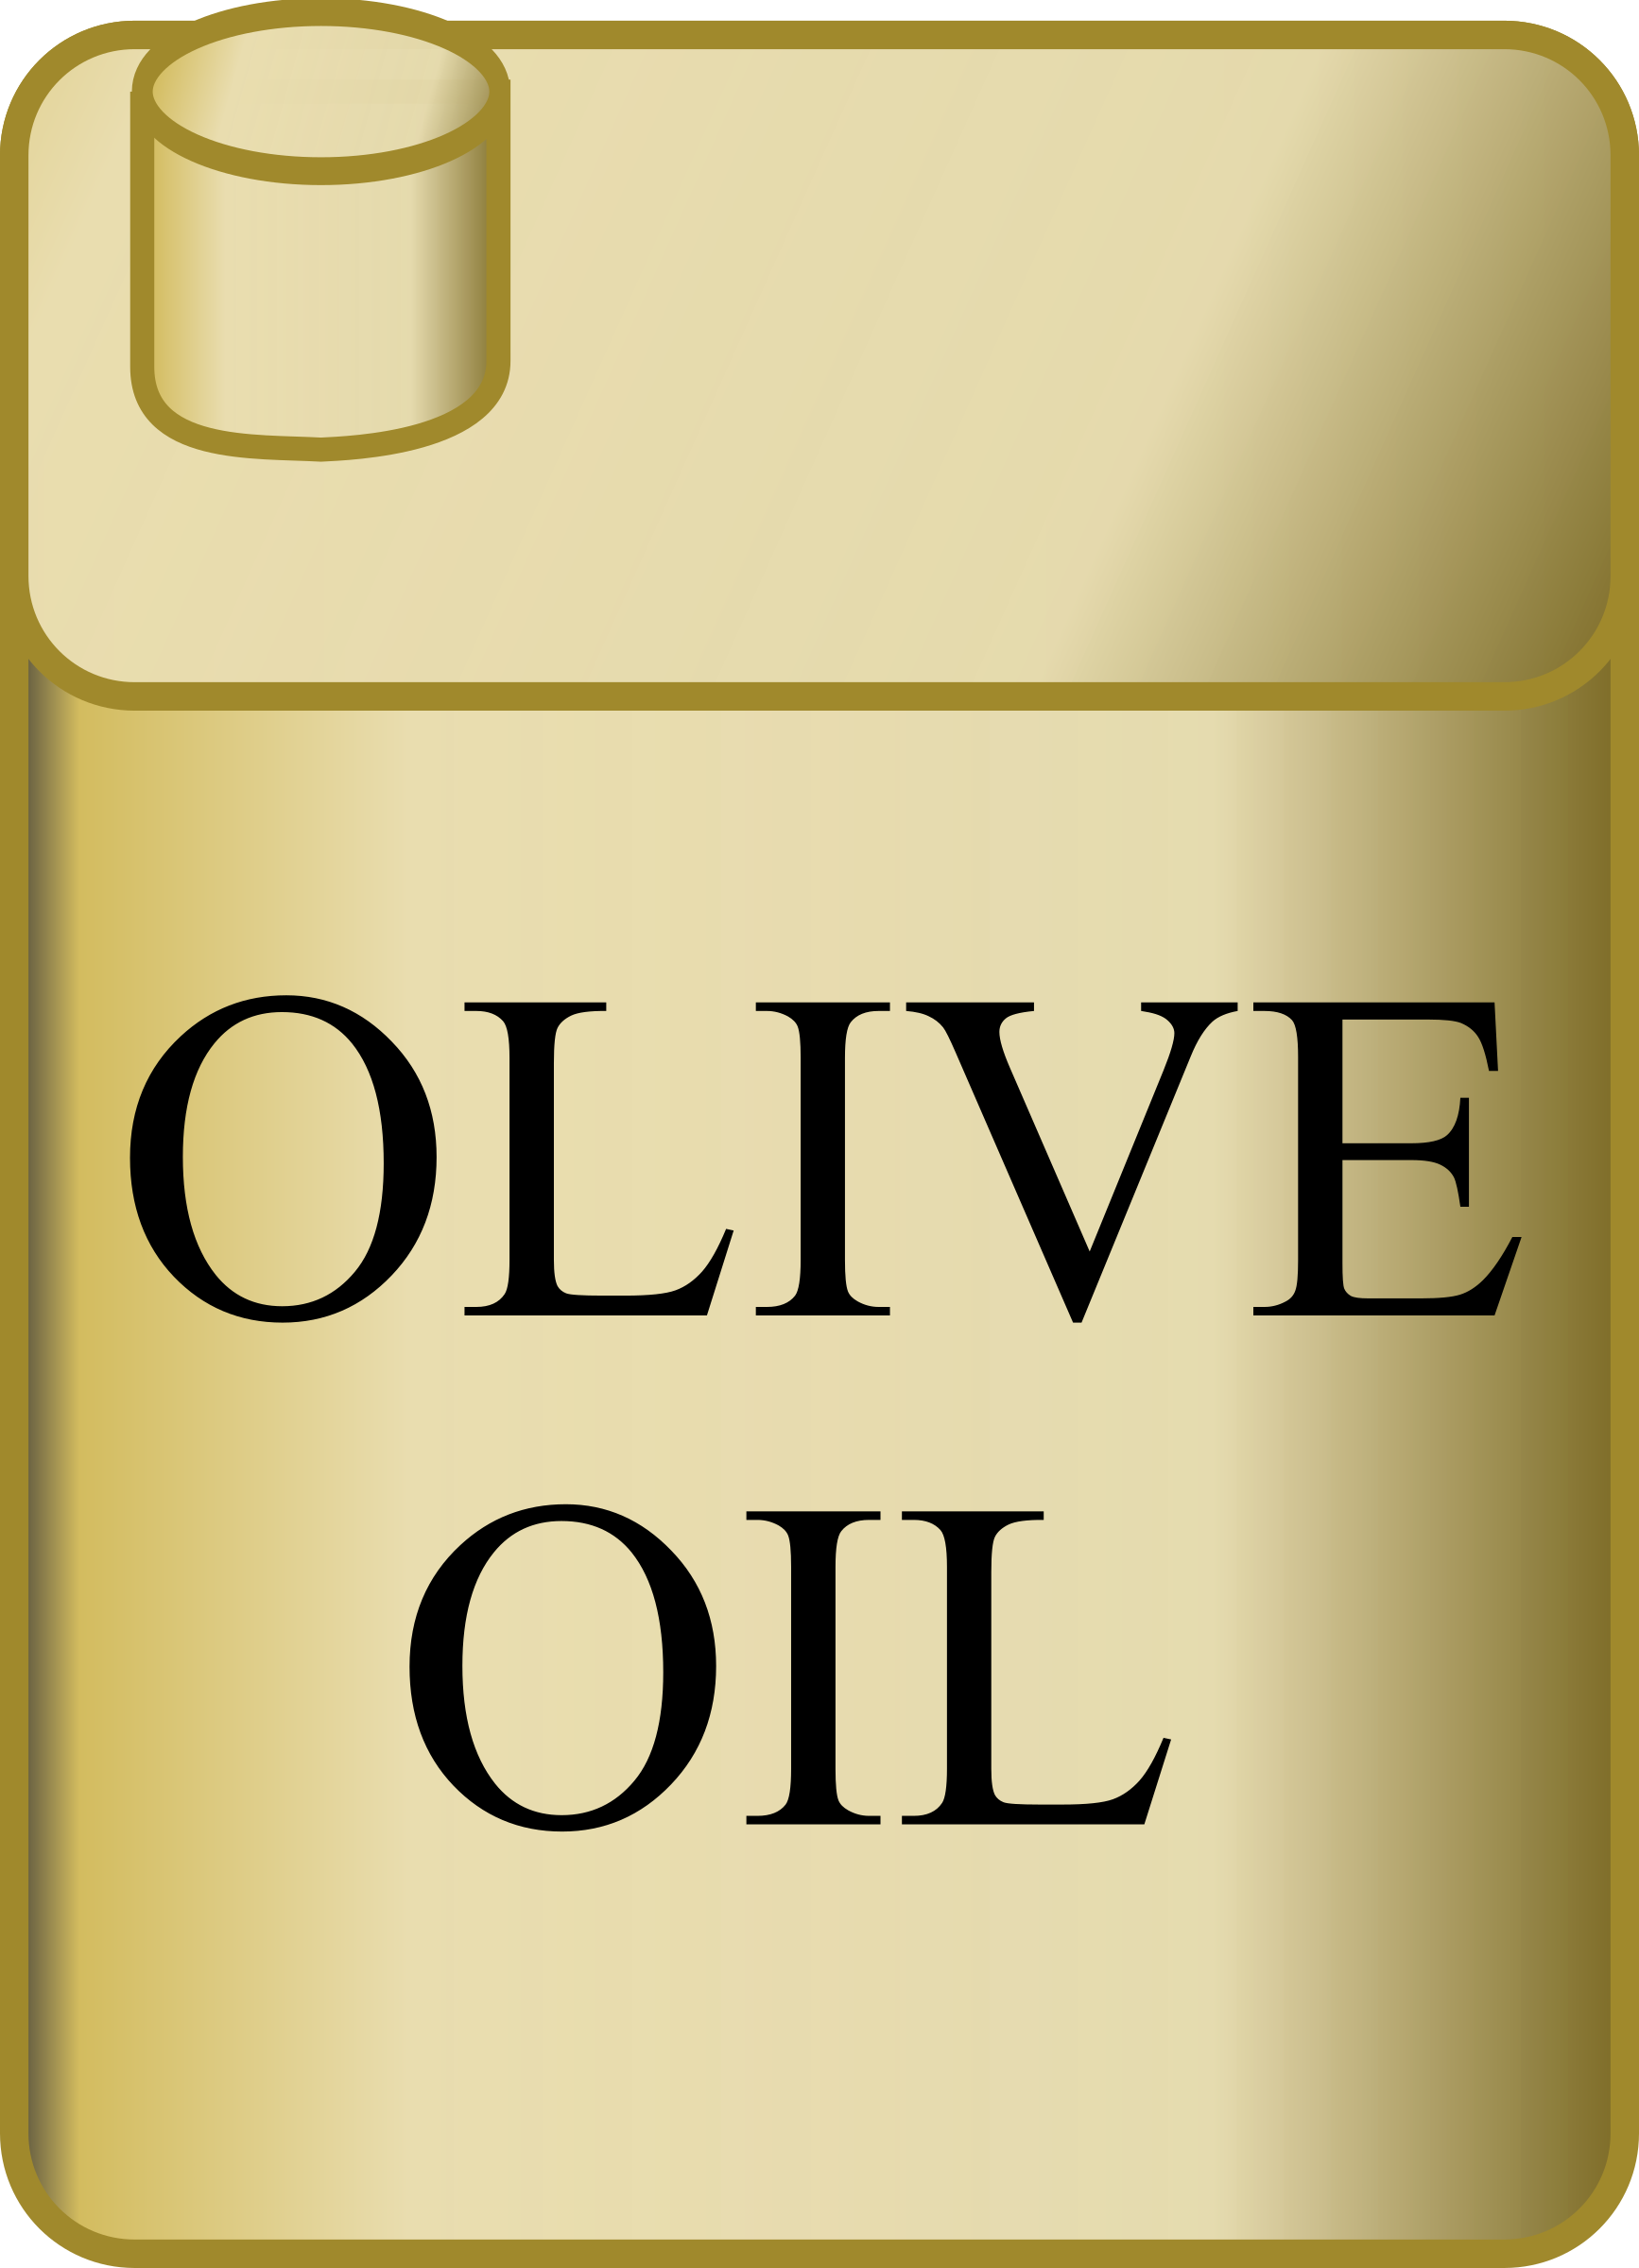 Olive Oil by jhnri4